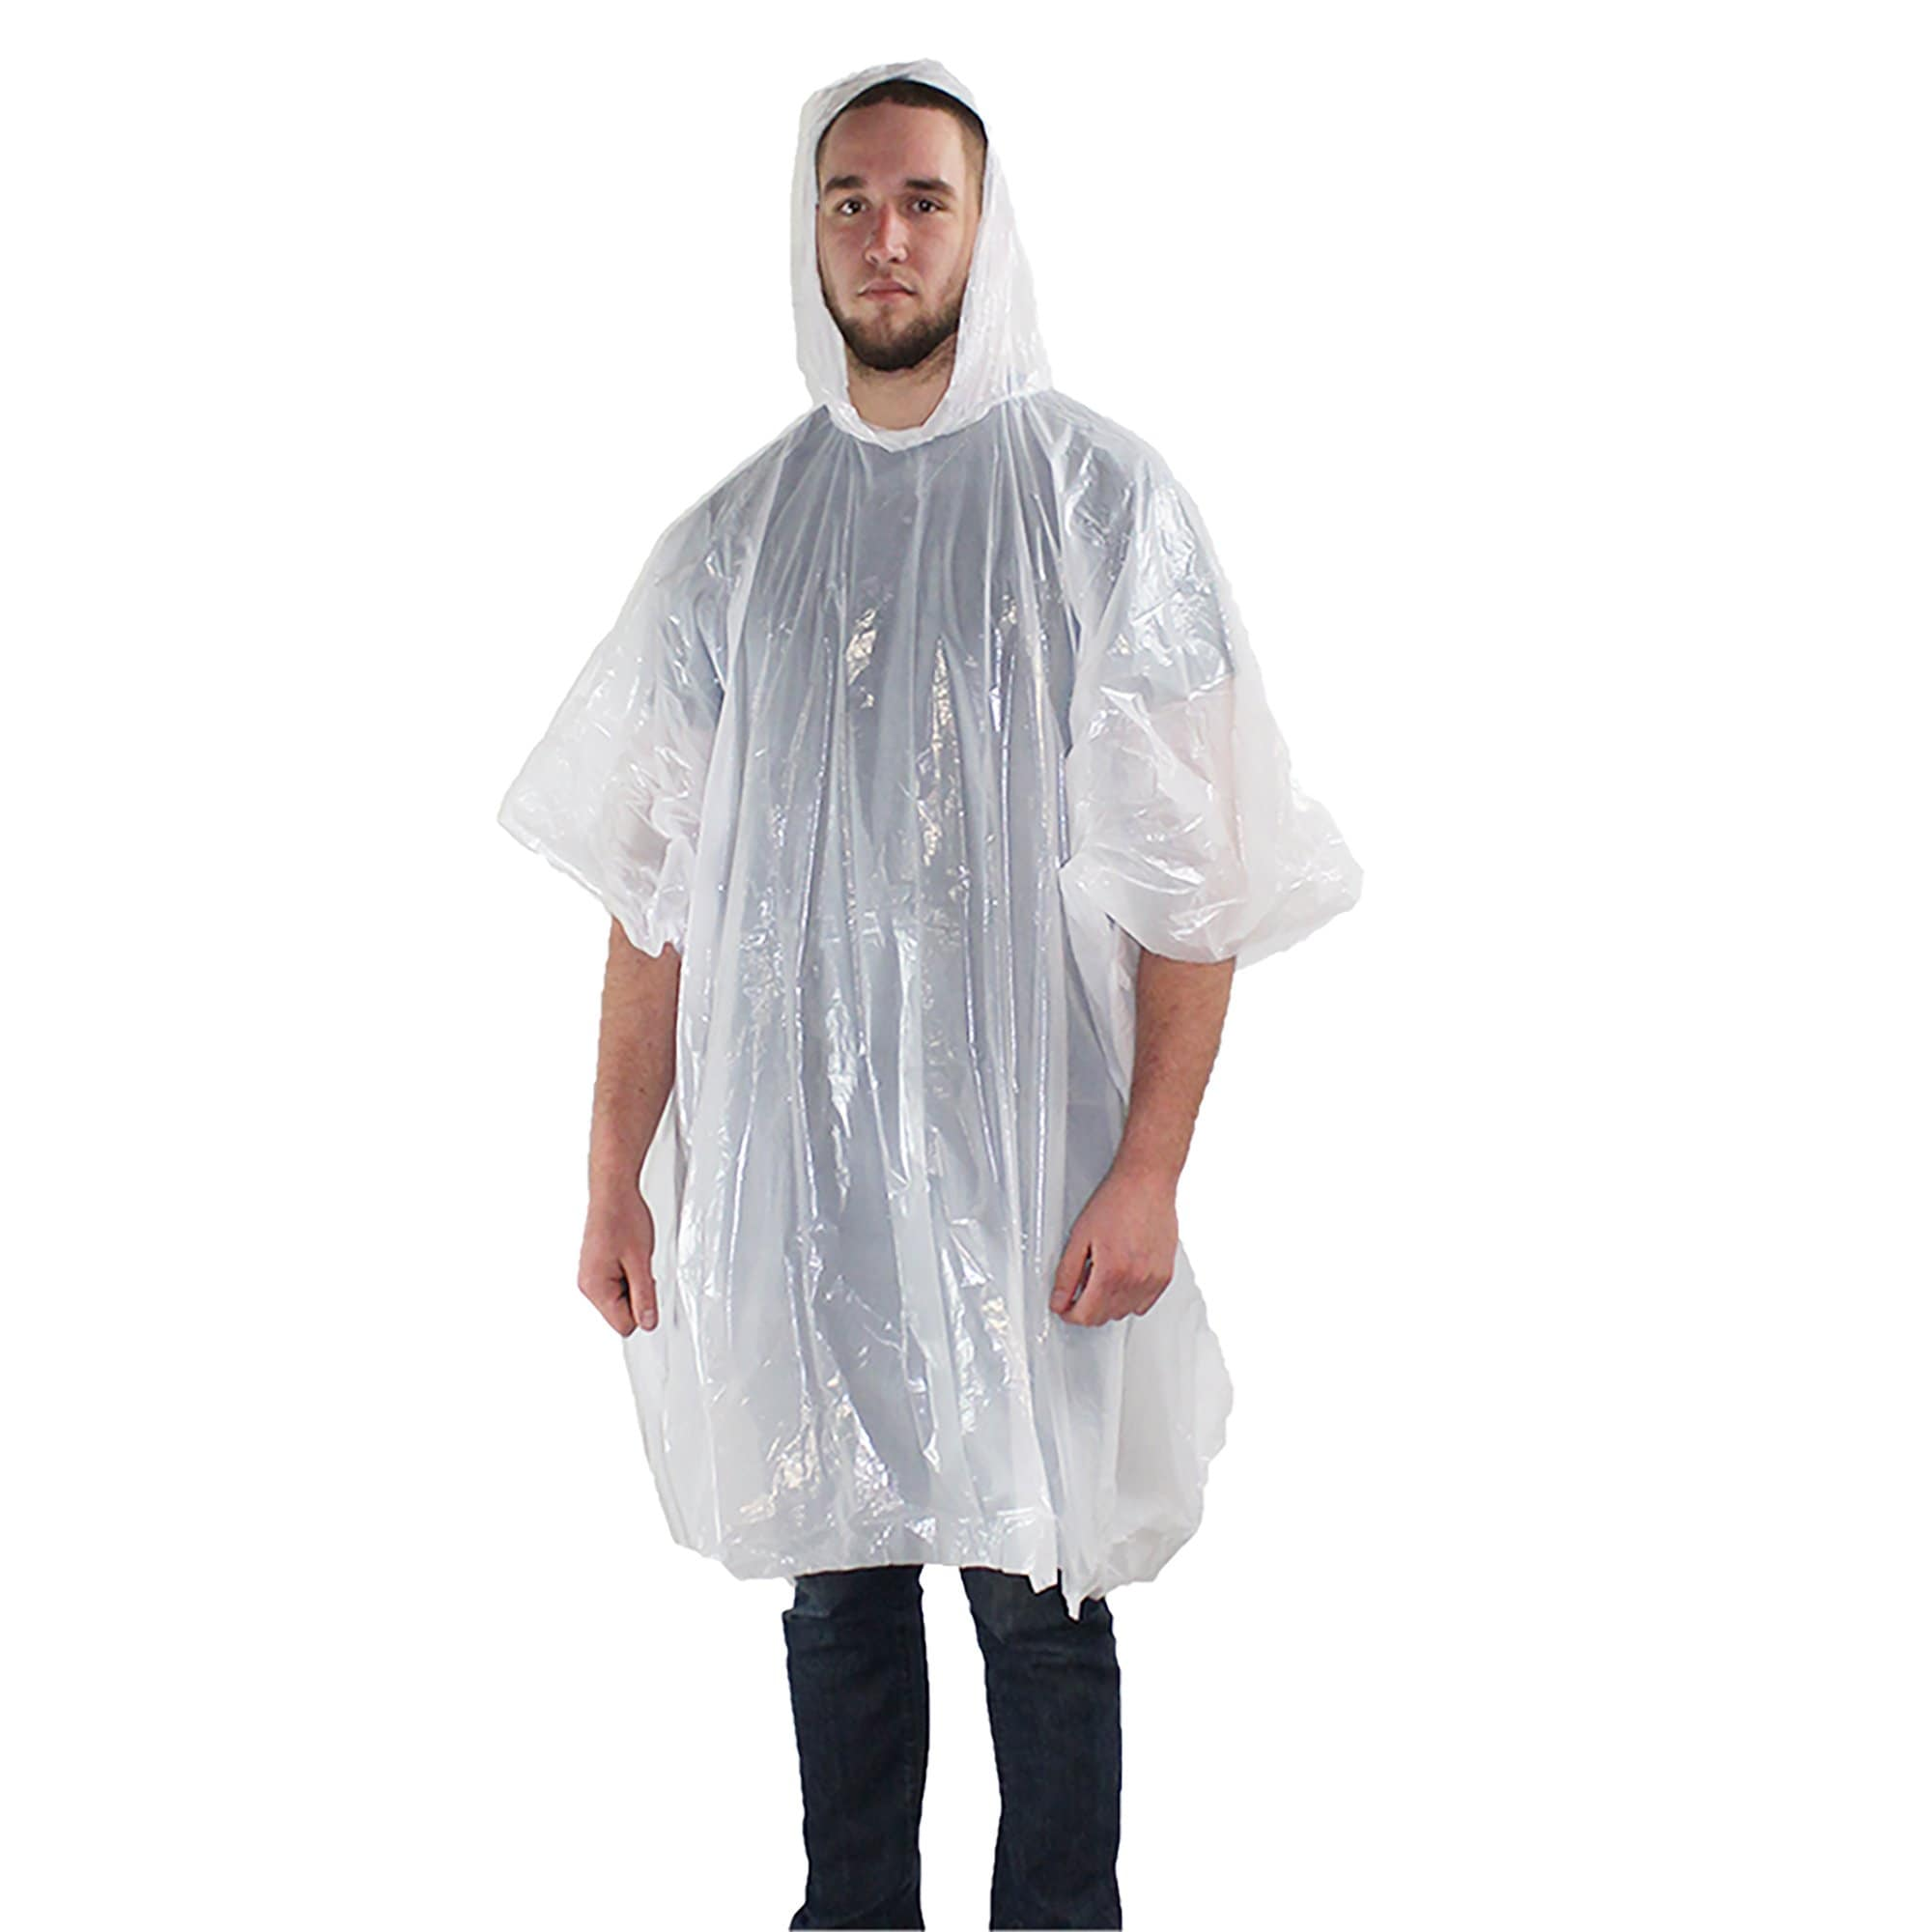 72HRS Disposable Hooded Rain Poncho